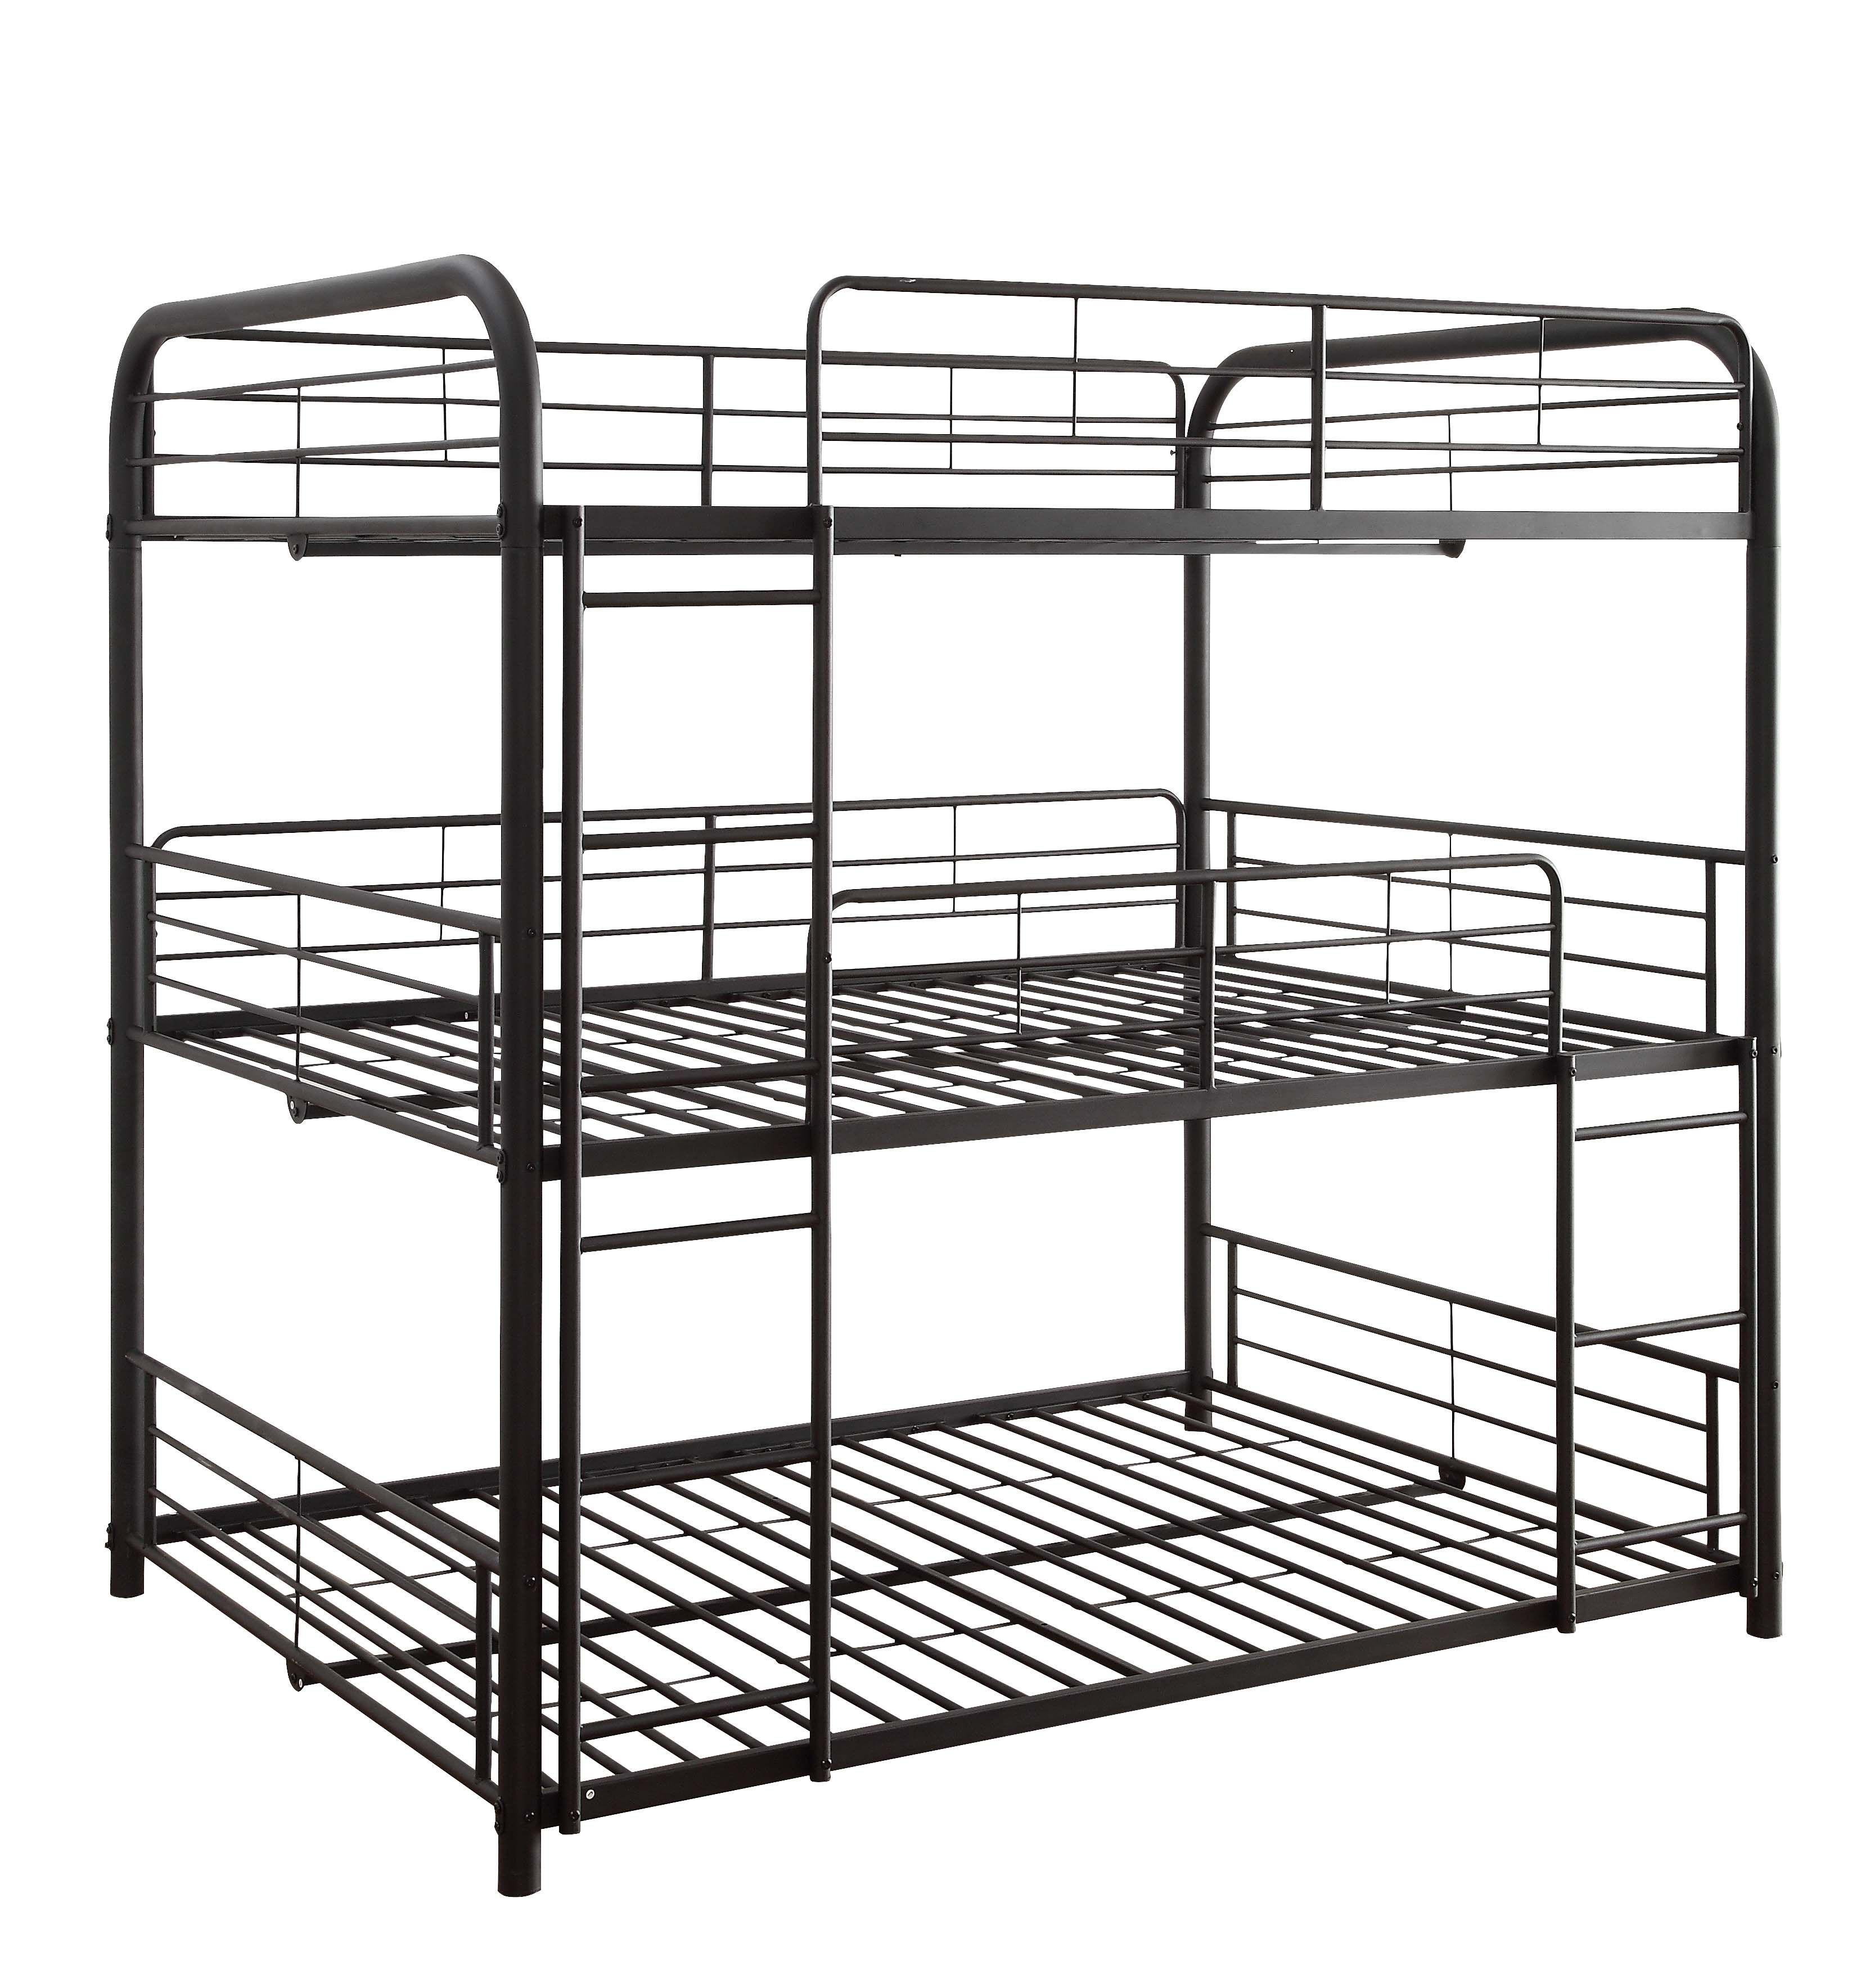 Home Triple bunk bed, Bunk beds, Bunk beds with stairs